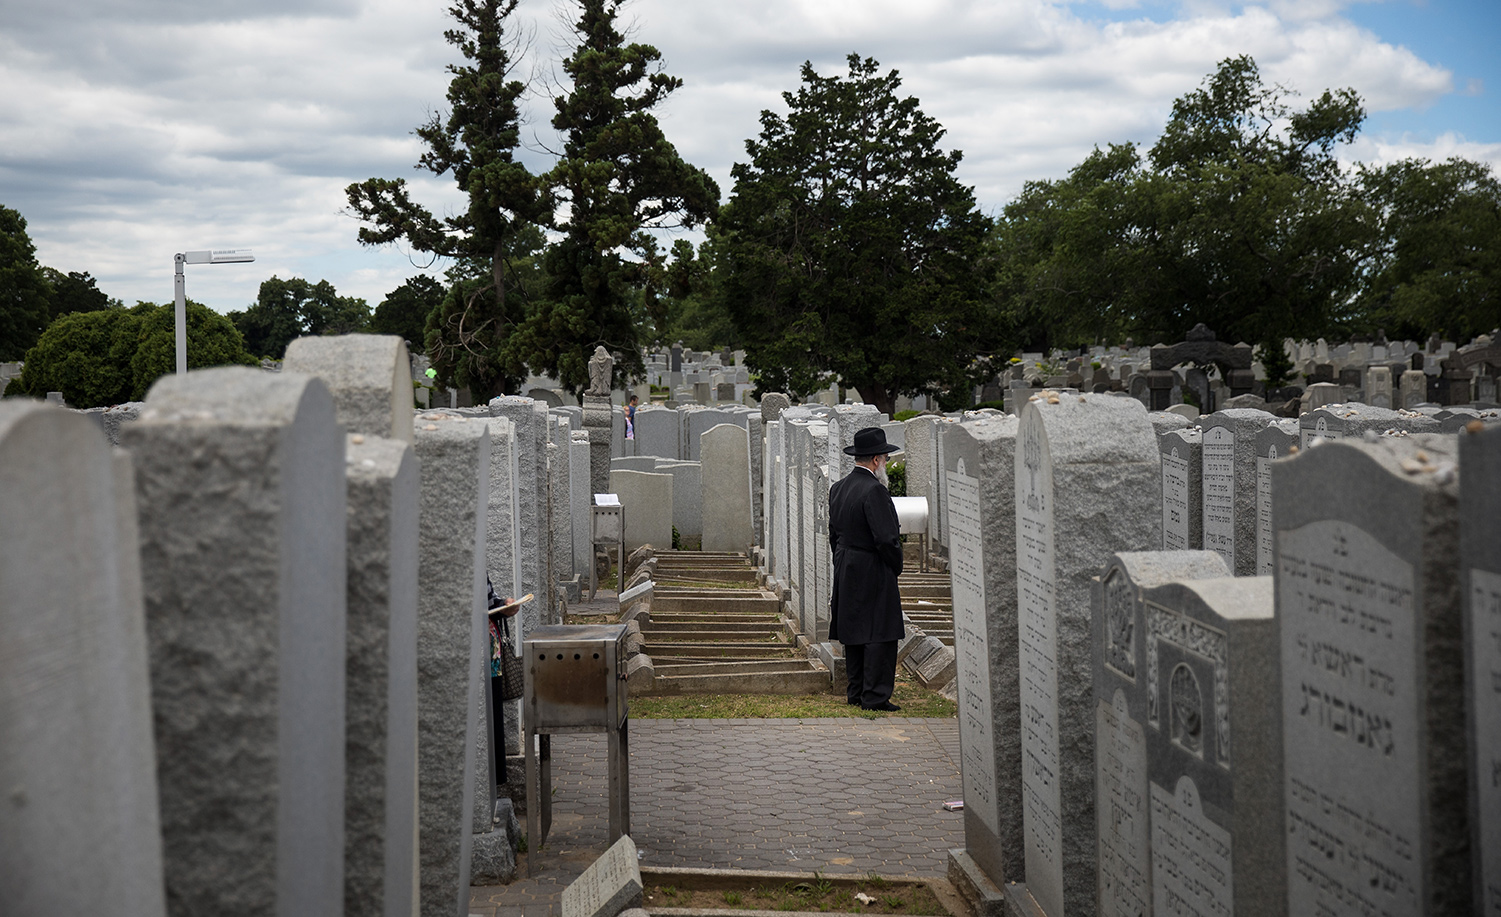 Visitors pray near the gravesite of Menachem Mendel Schneerson in Queens, New York. Drew Angerer/Getty Images.